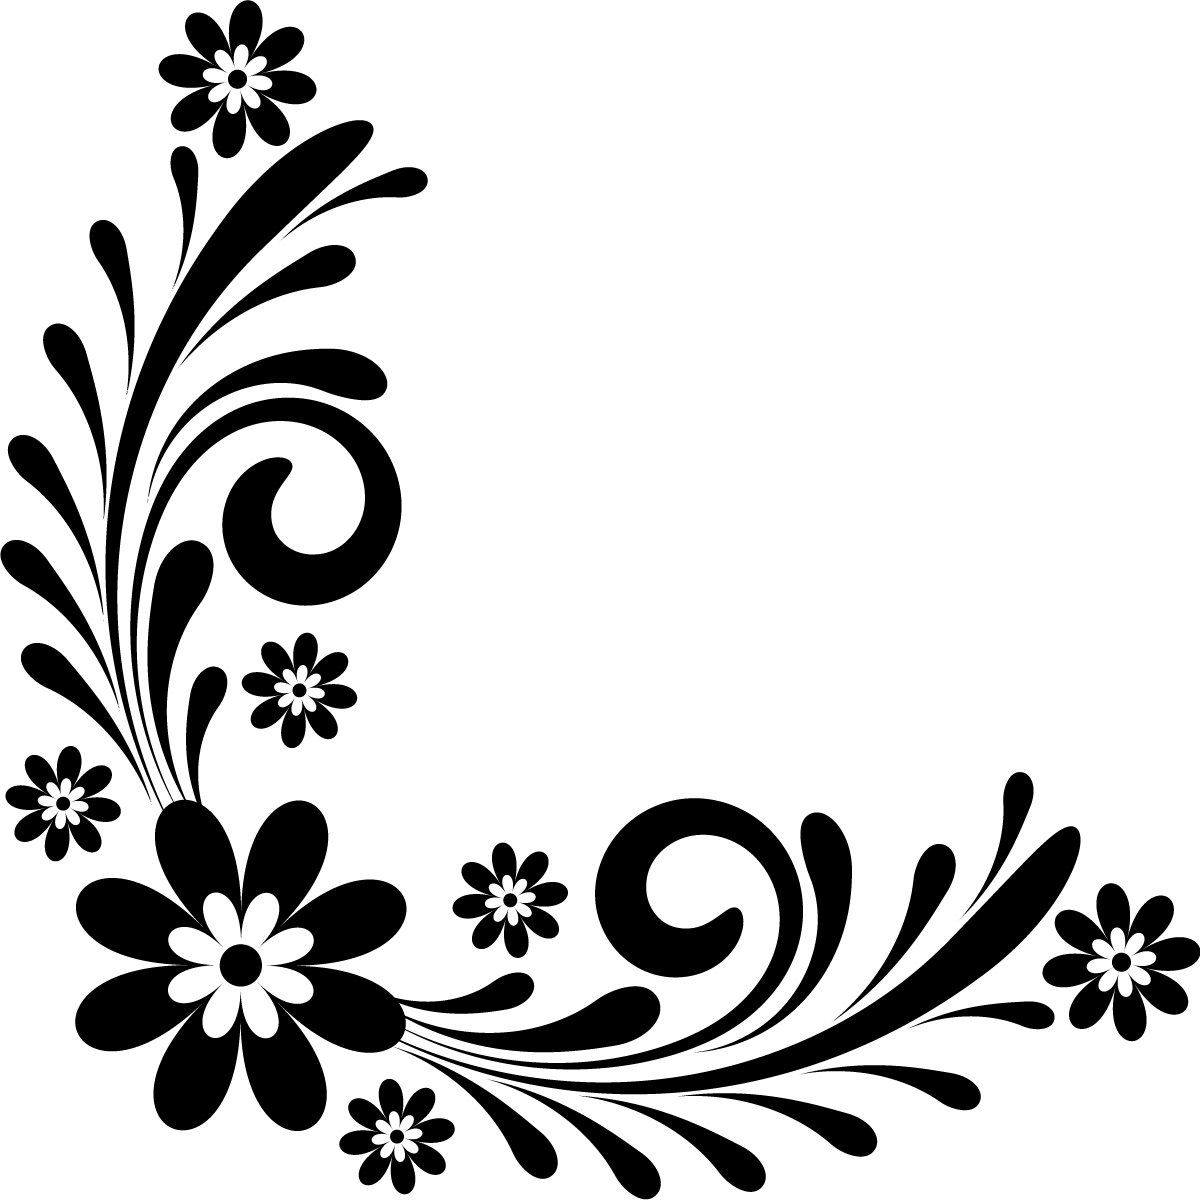 Pin about Border design and Page borders design on Black and.